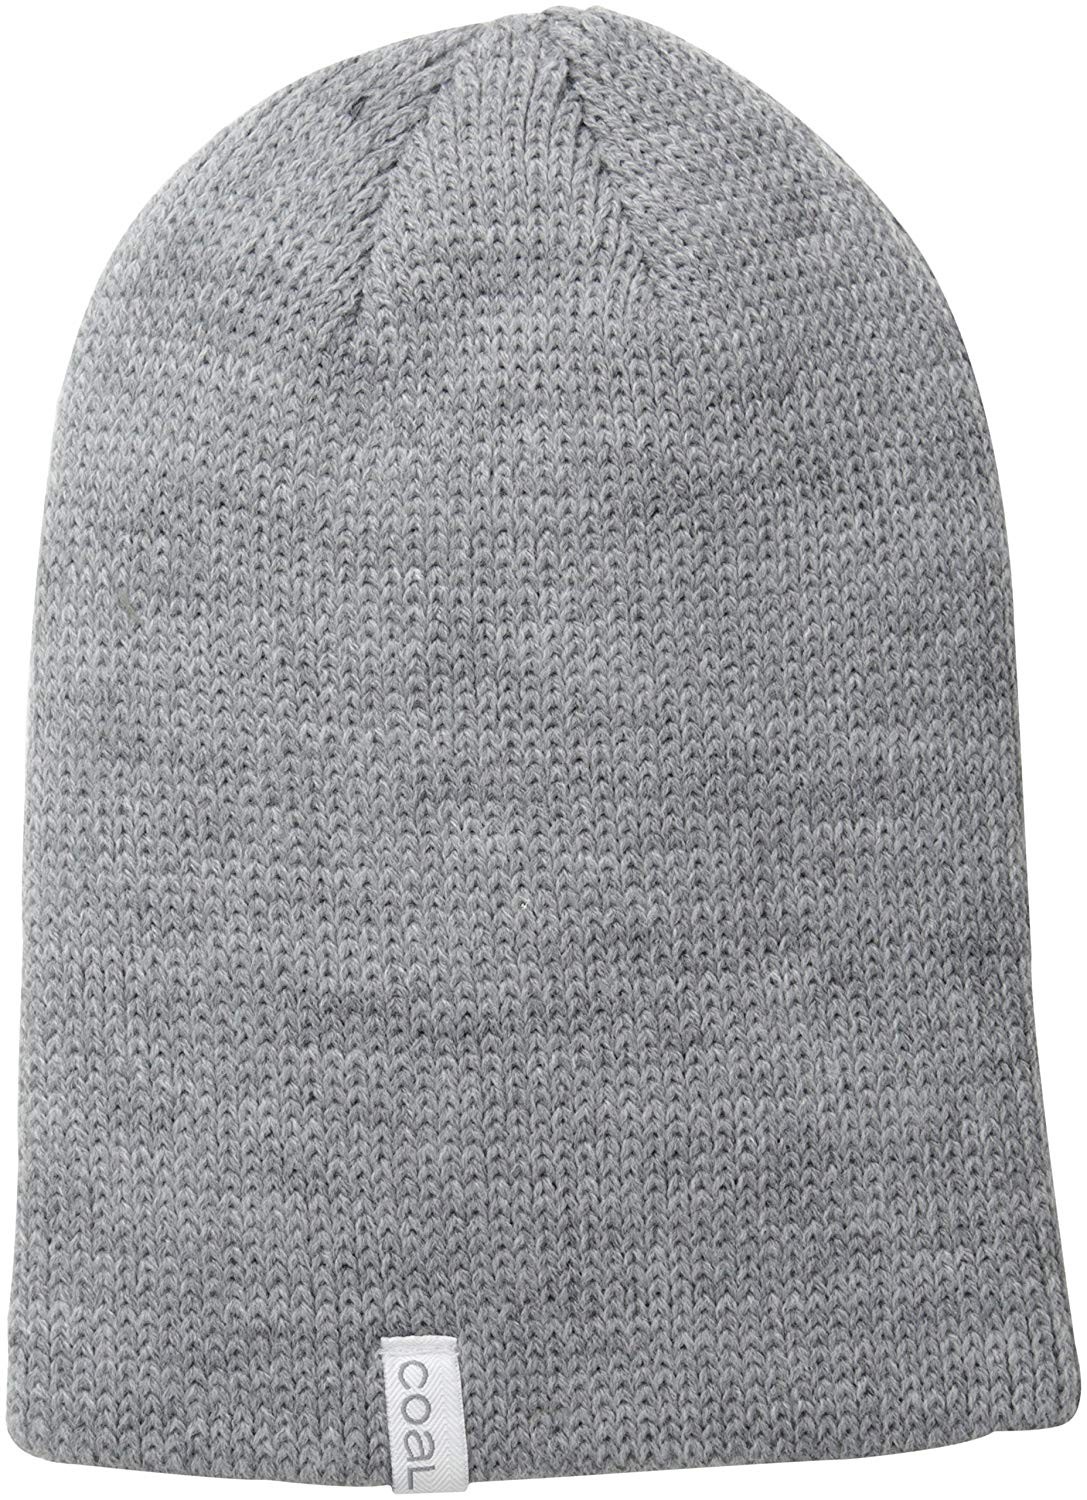 79f5201aa76 Get Quotations · Coal The Frena Solid Fine Knit Beanie Hat